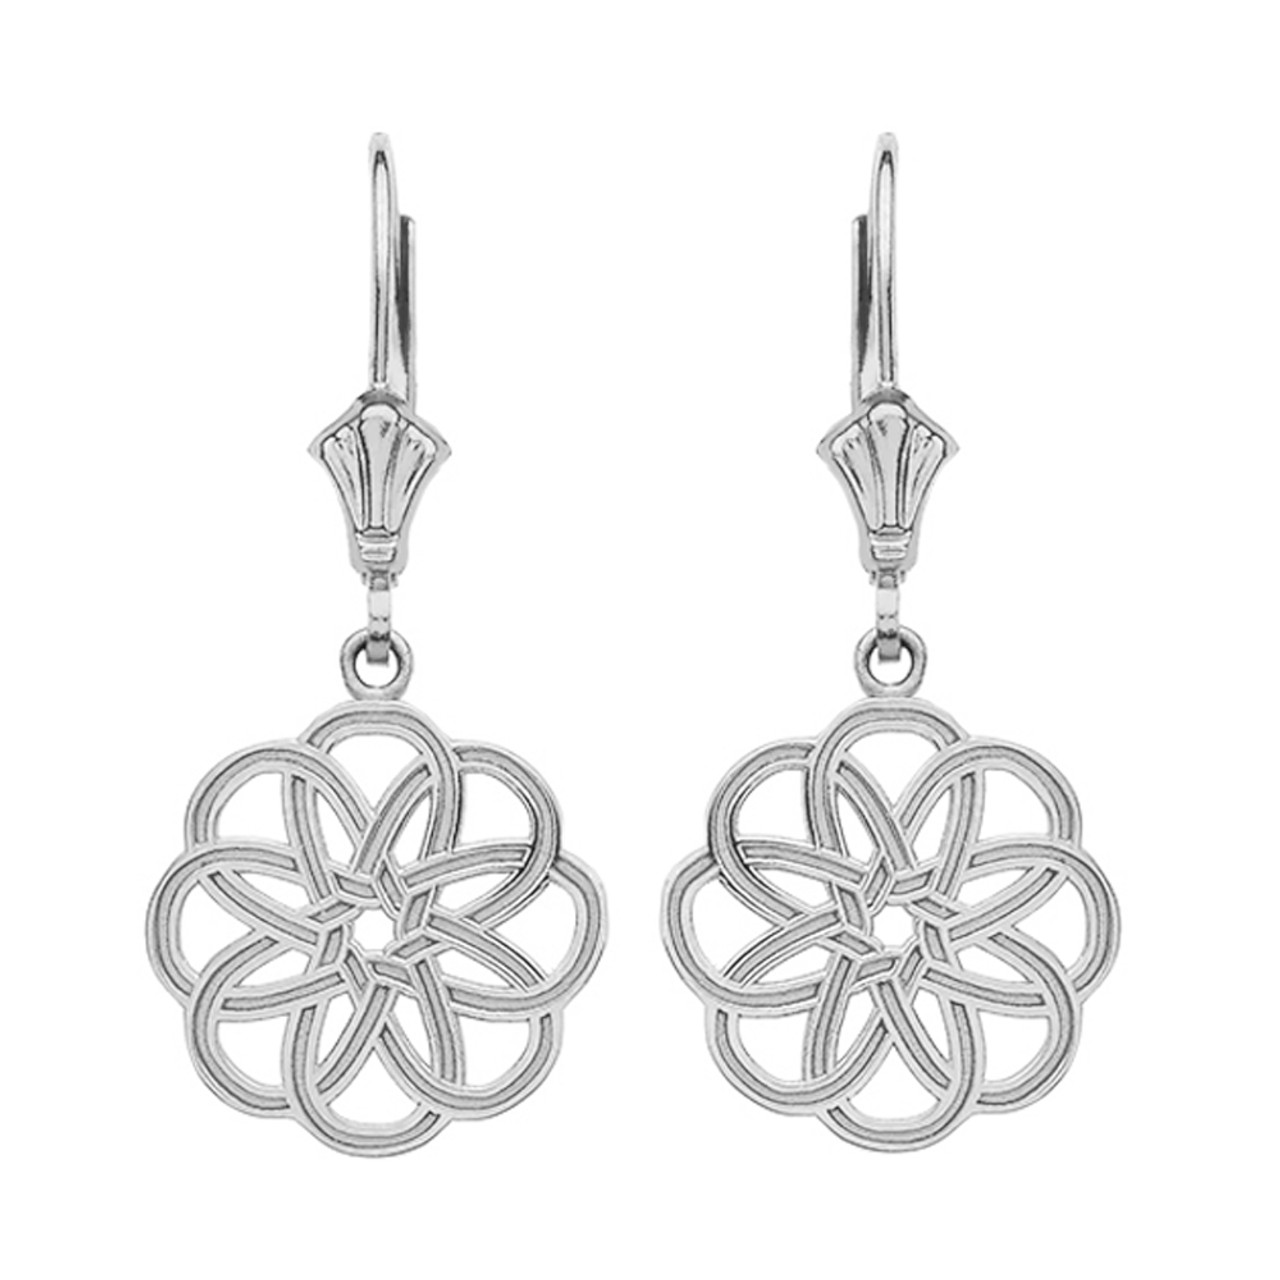 amazon jewelry dp com inch trinity silver triquetra celtic earrings knot stud sterling